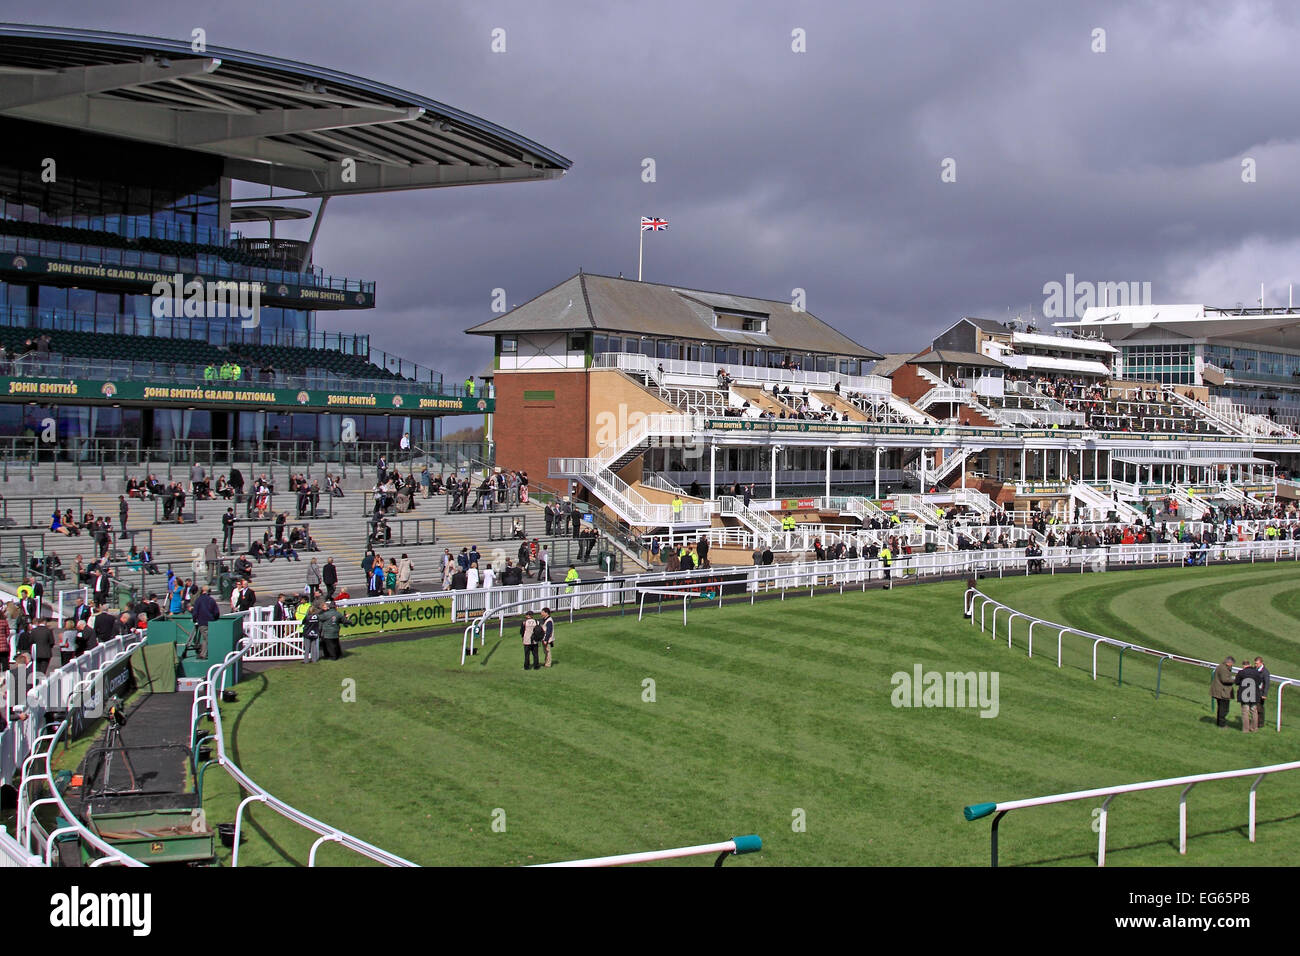 A pristine Aintree Racecourse at lunchtime before the Grand National / Liverpool / Merseyside / UK Stock Photo